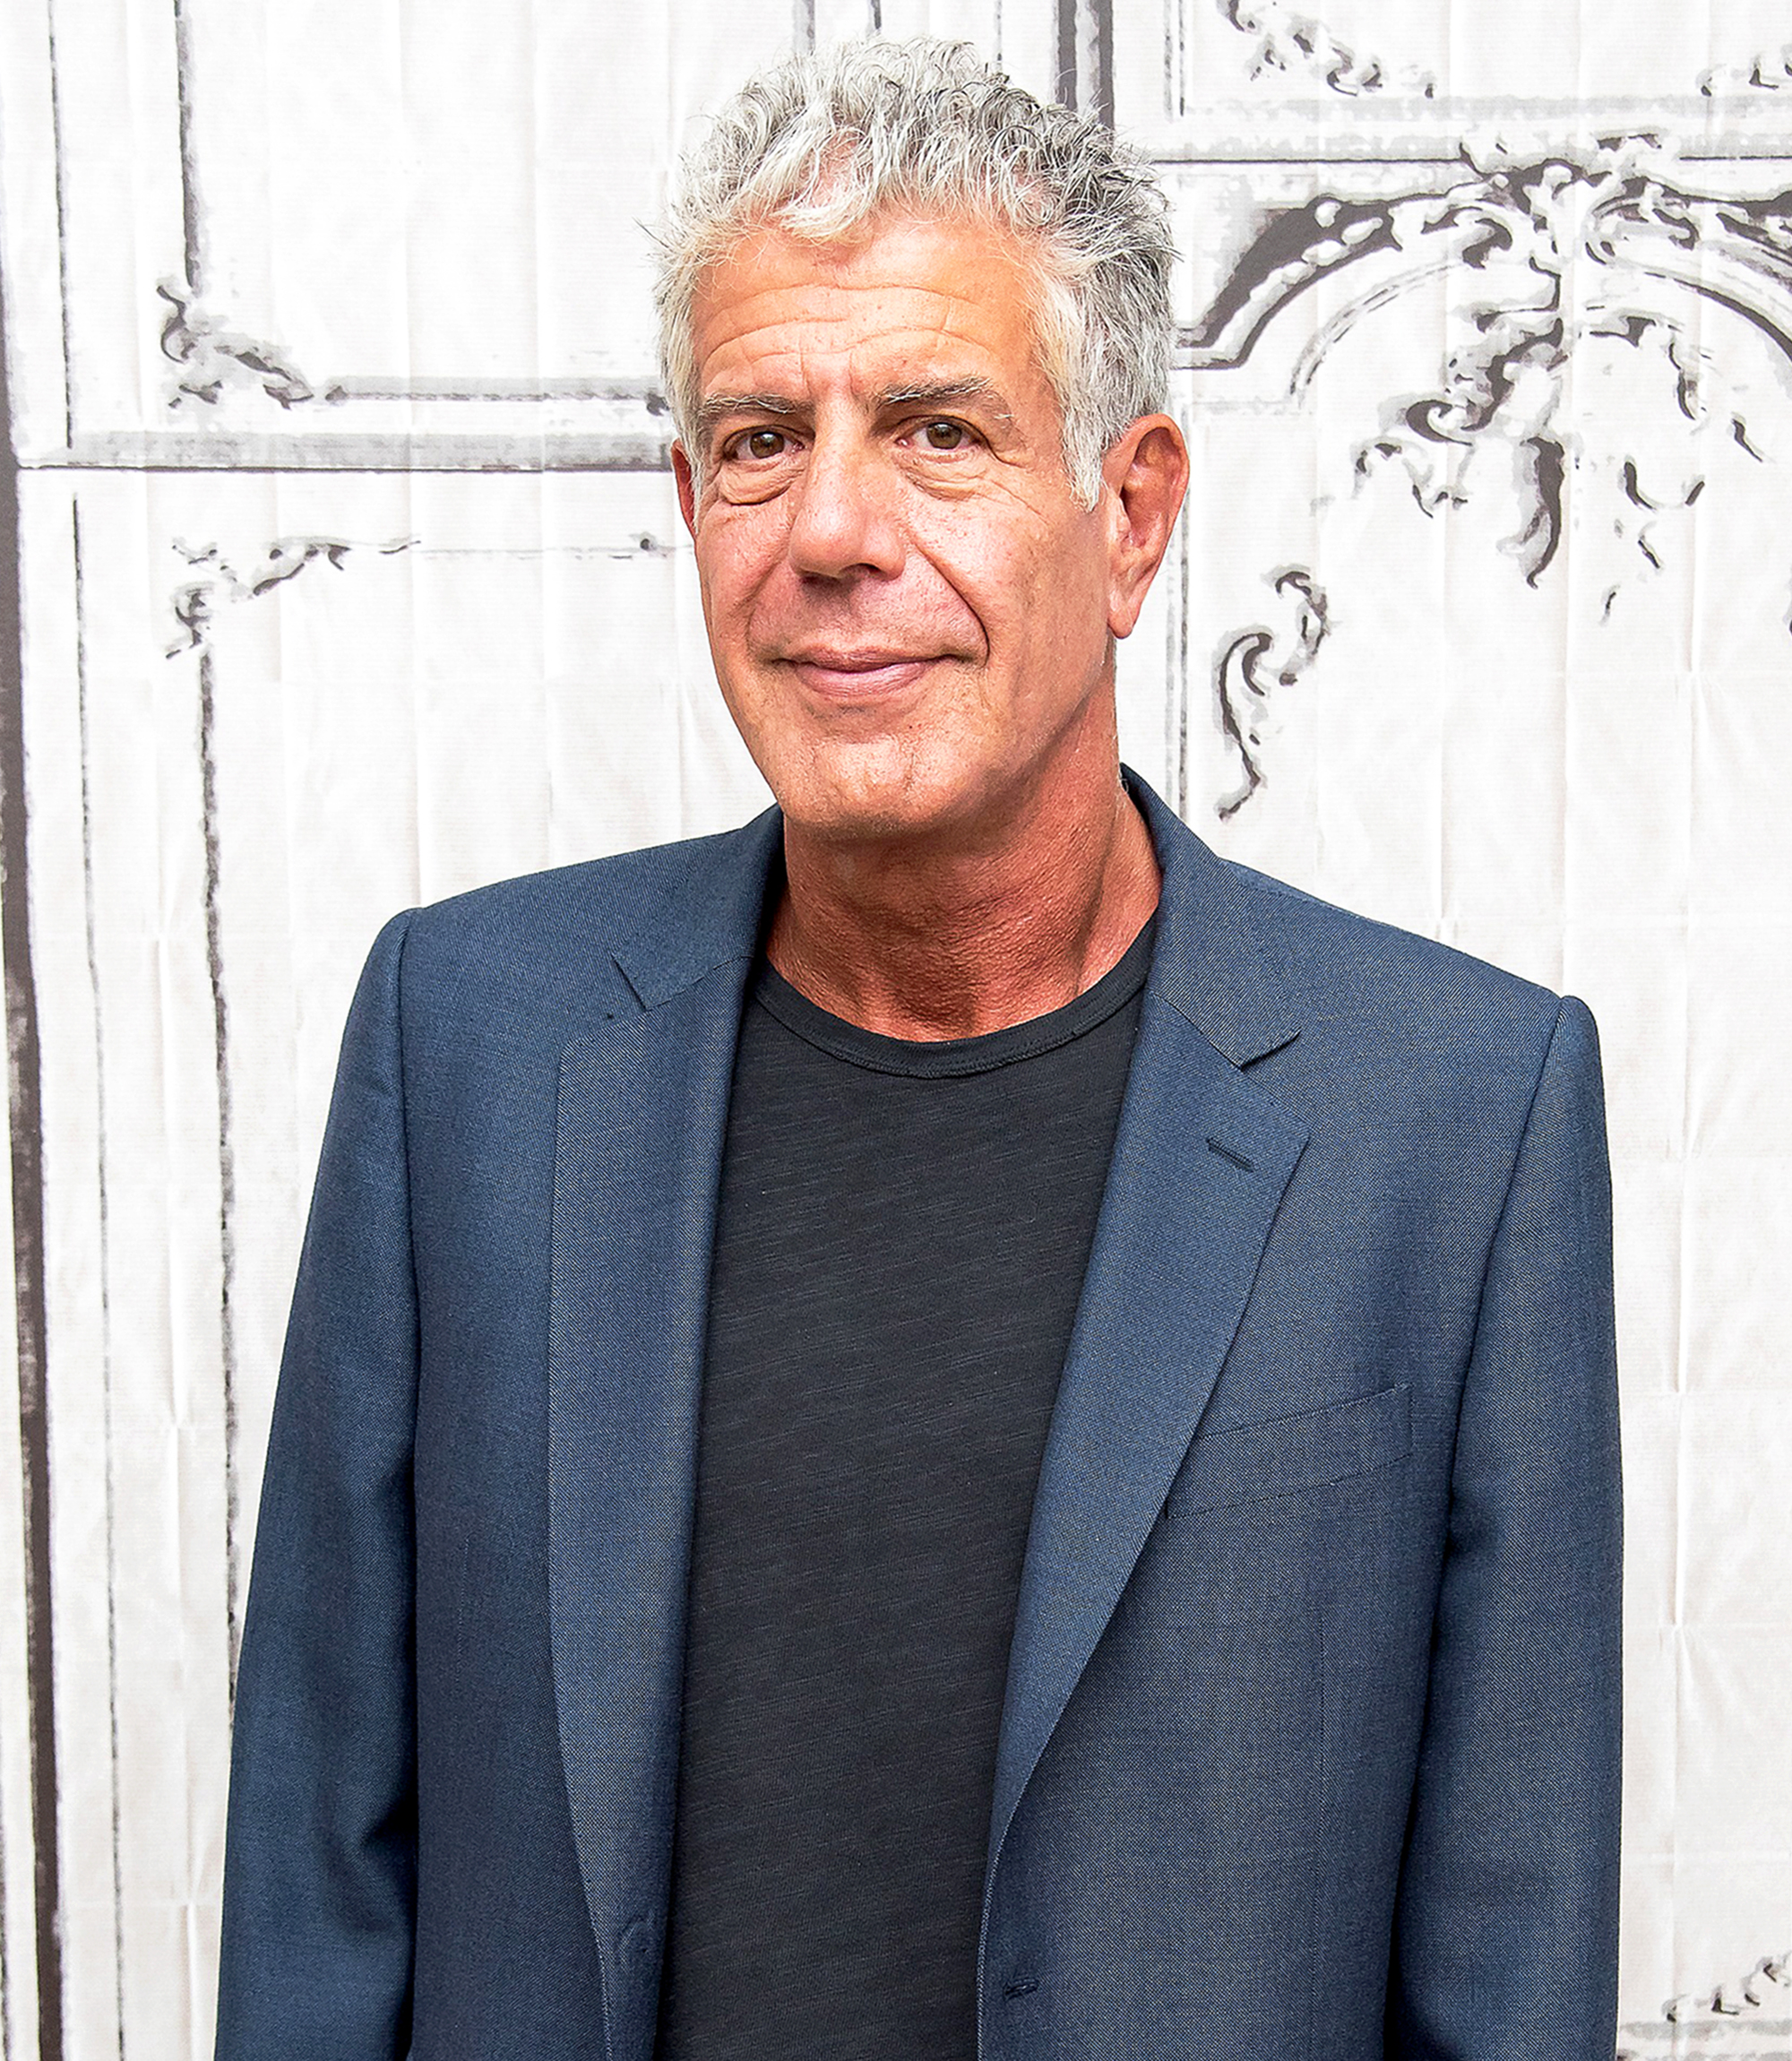 French Autopsy Finds No Narcotics In Anthony Bourdain's System